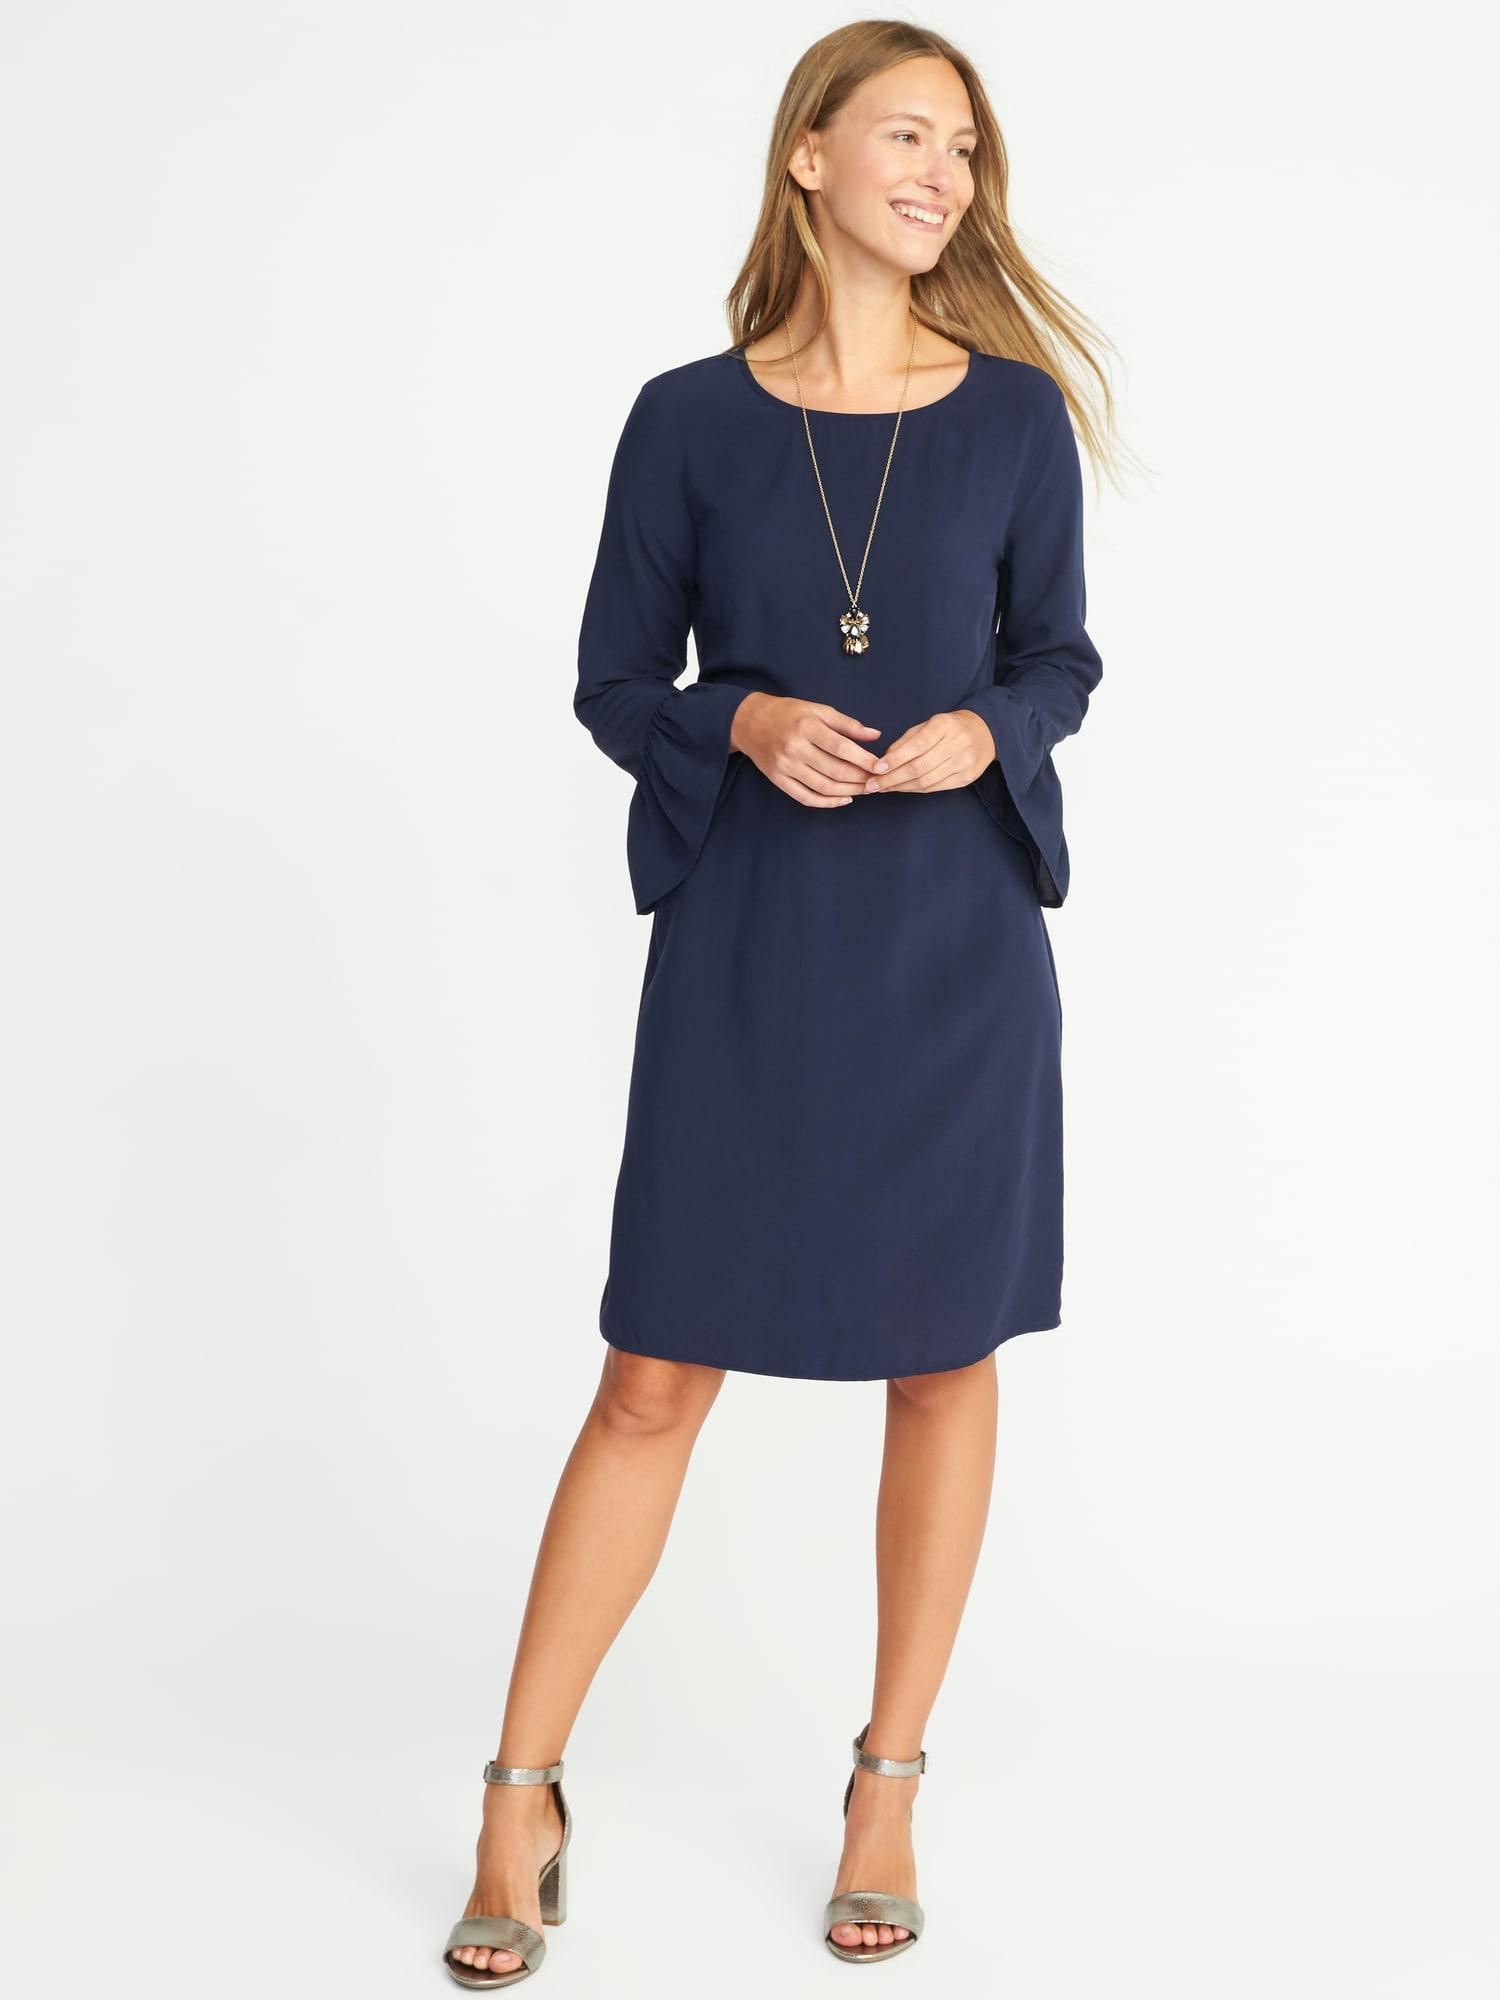 77891bb7709d Lyst - Old Navy Ruffle-sleeve Shift Dress in Blue